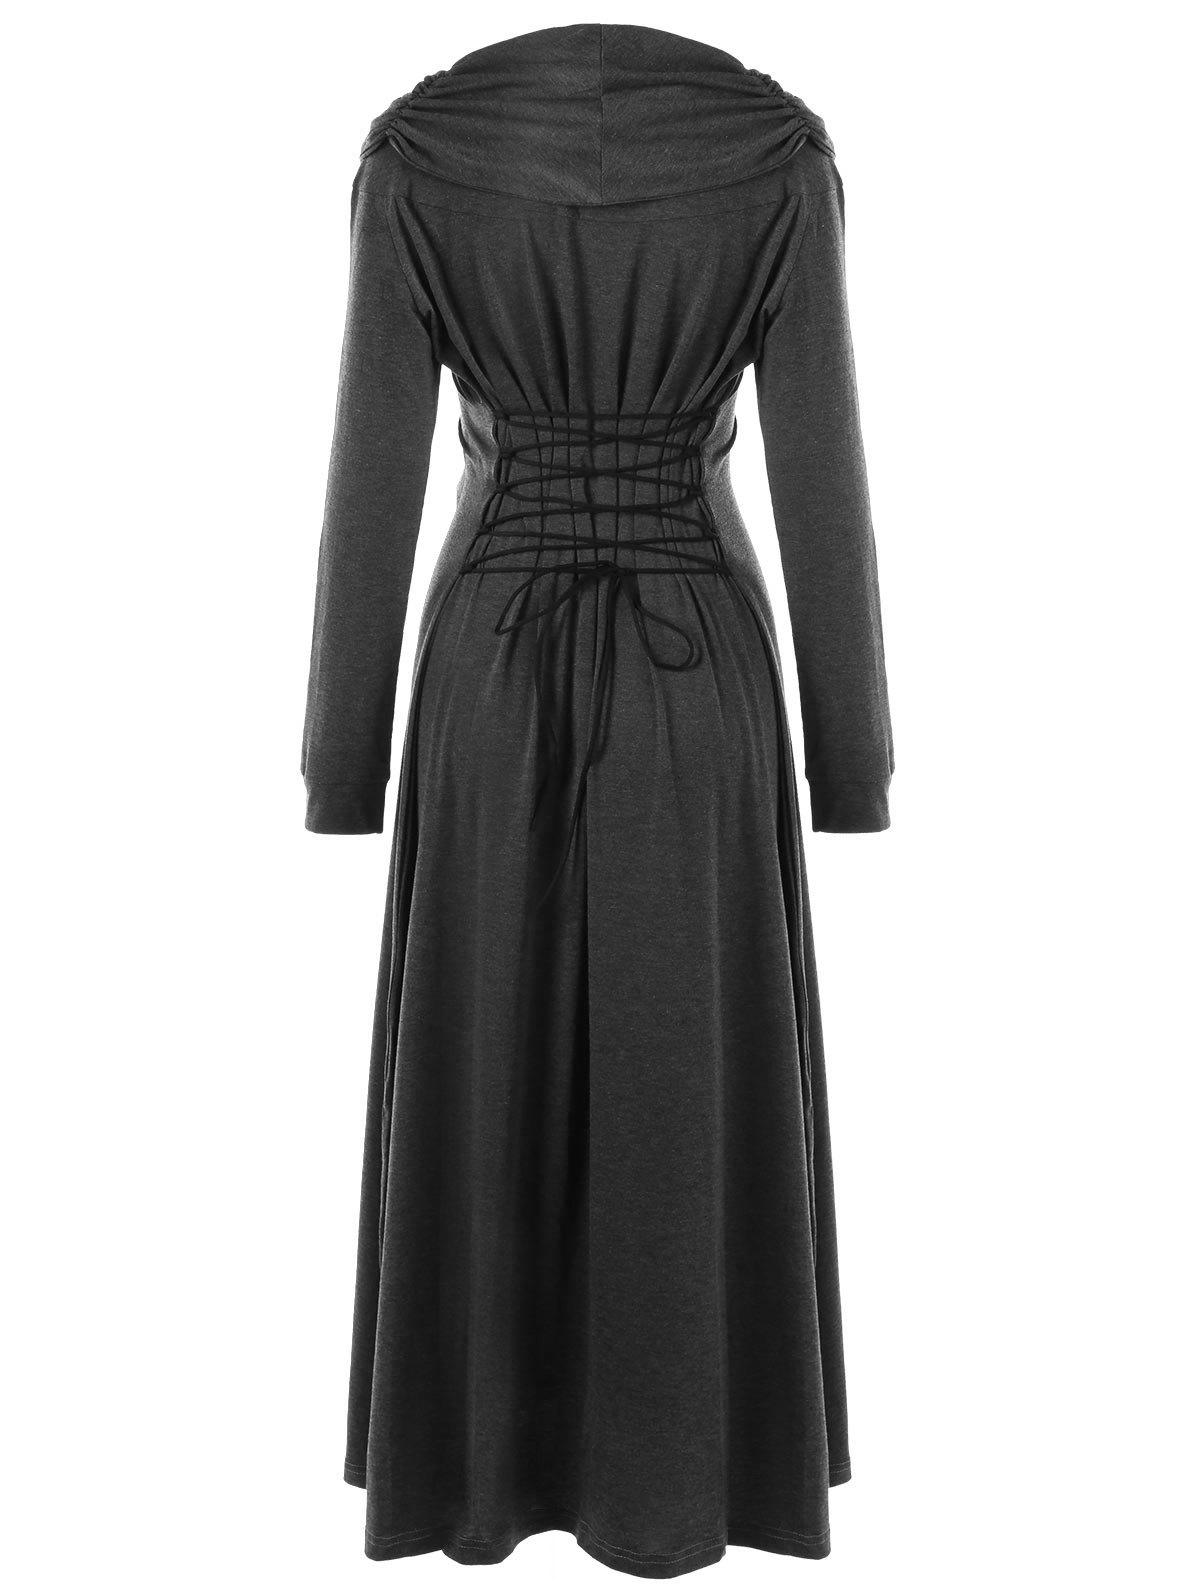 Lace Insert Lace Up Maxi Dress - DEEP GRAY 2XL